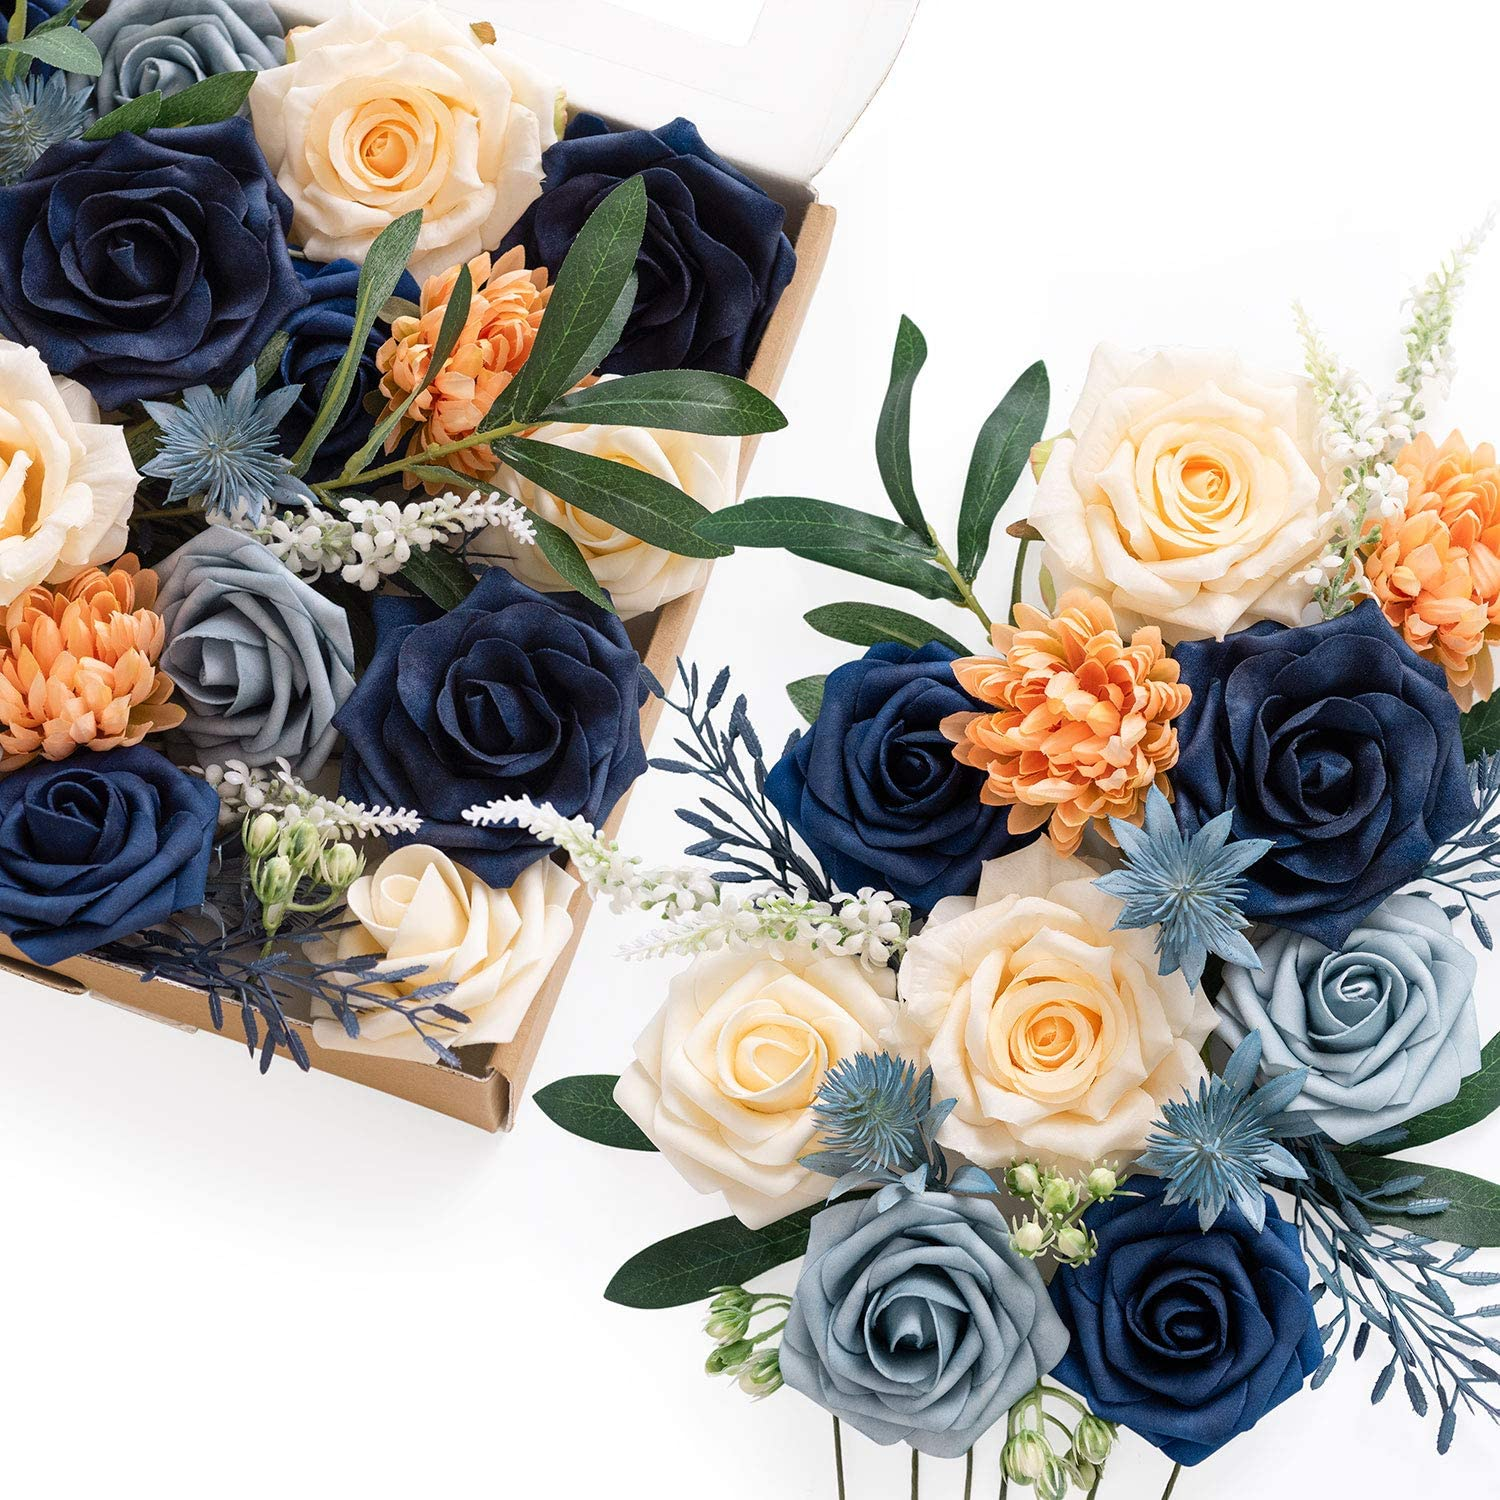 Ling's moment Deluxe Wedding Decoration Artificial Flowers Box Set Classic Navy Blue Theme for DIY Bouquets Boutonniers Centerpieces Garlands Arch Floral Arrangements